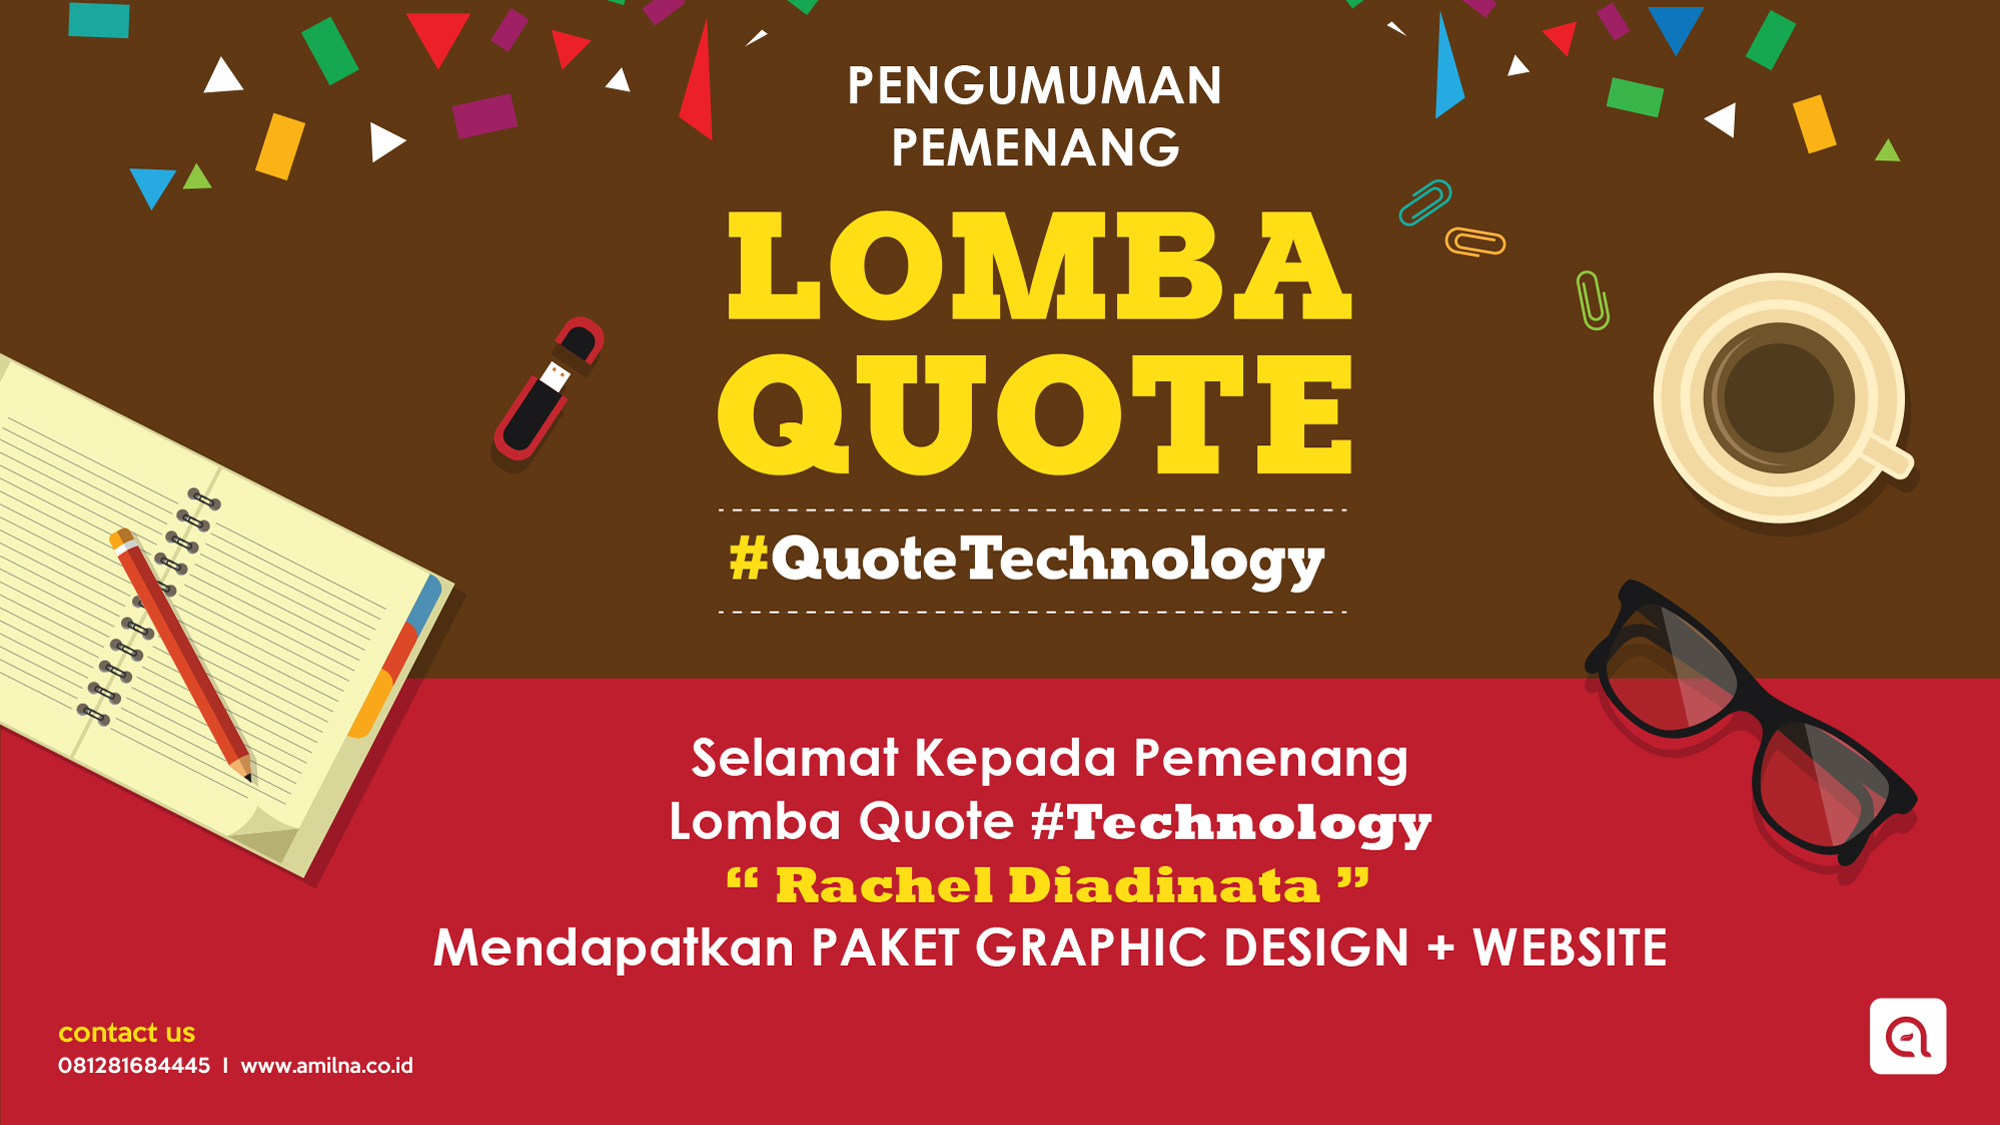 Pengumuman Pemenang Lomba Quote Technology